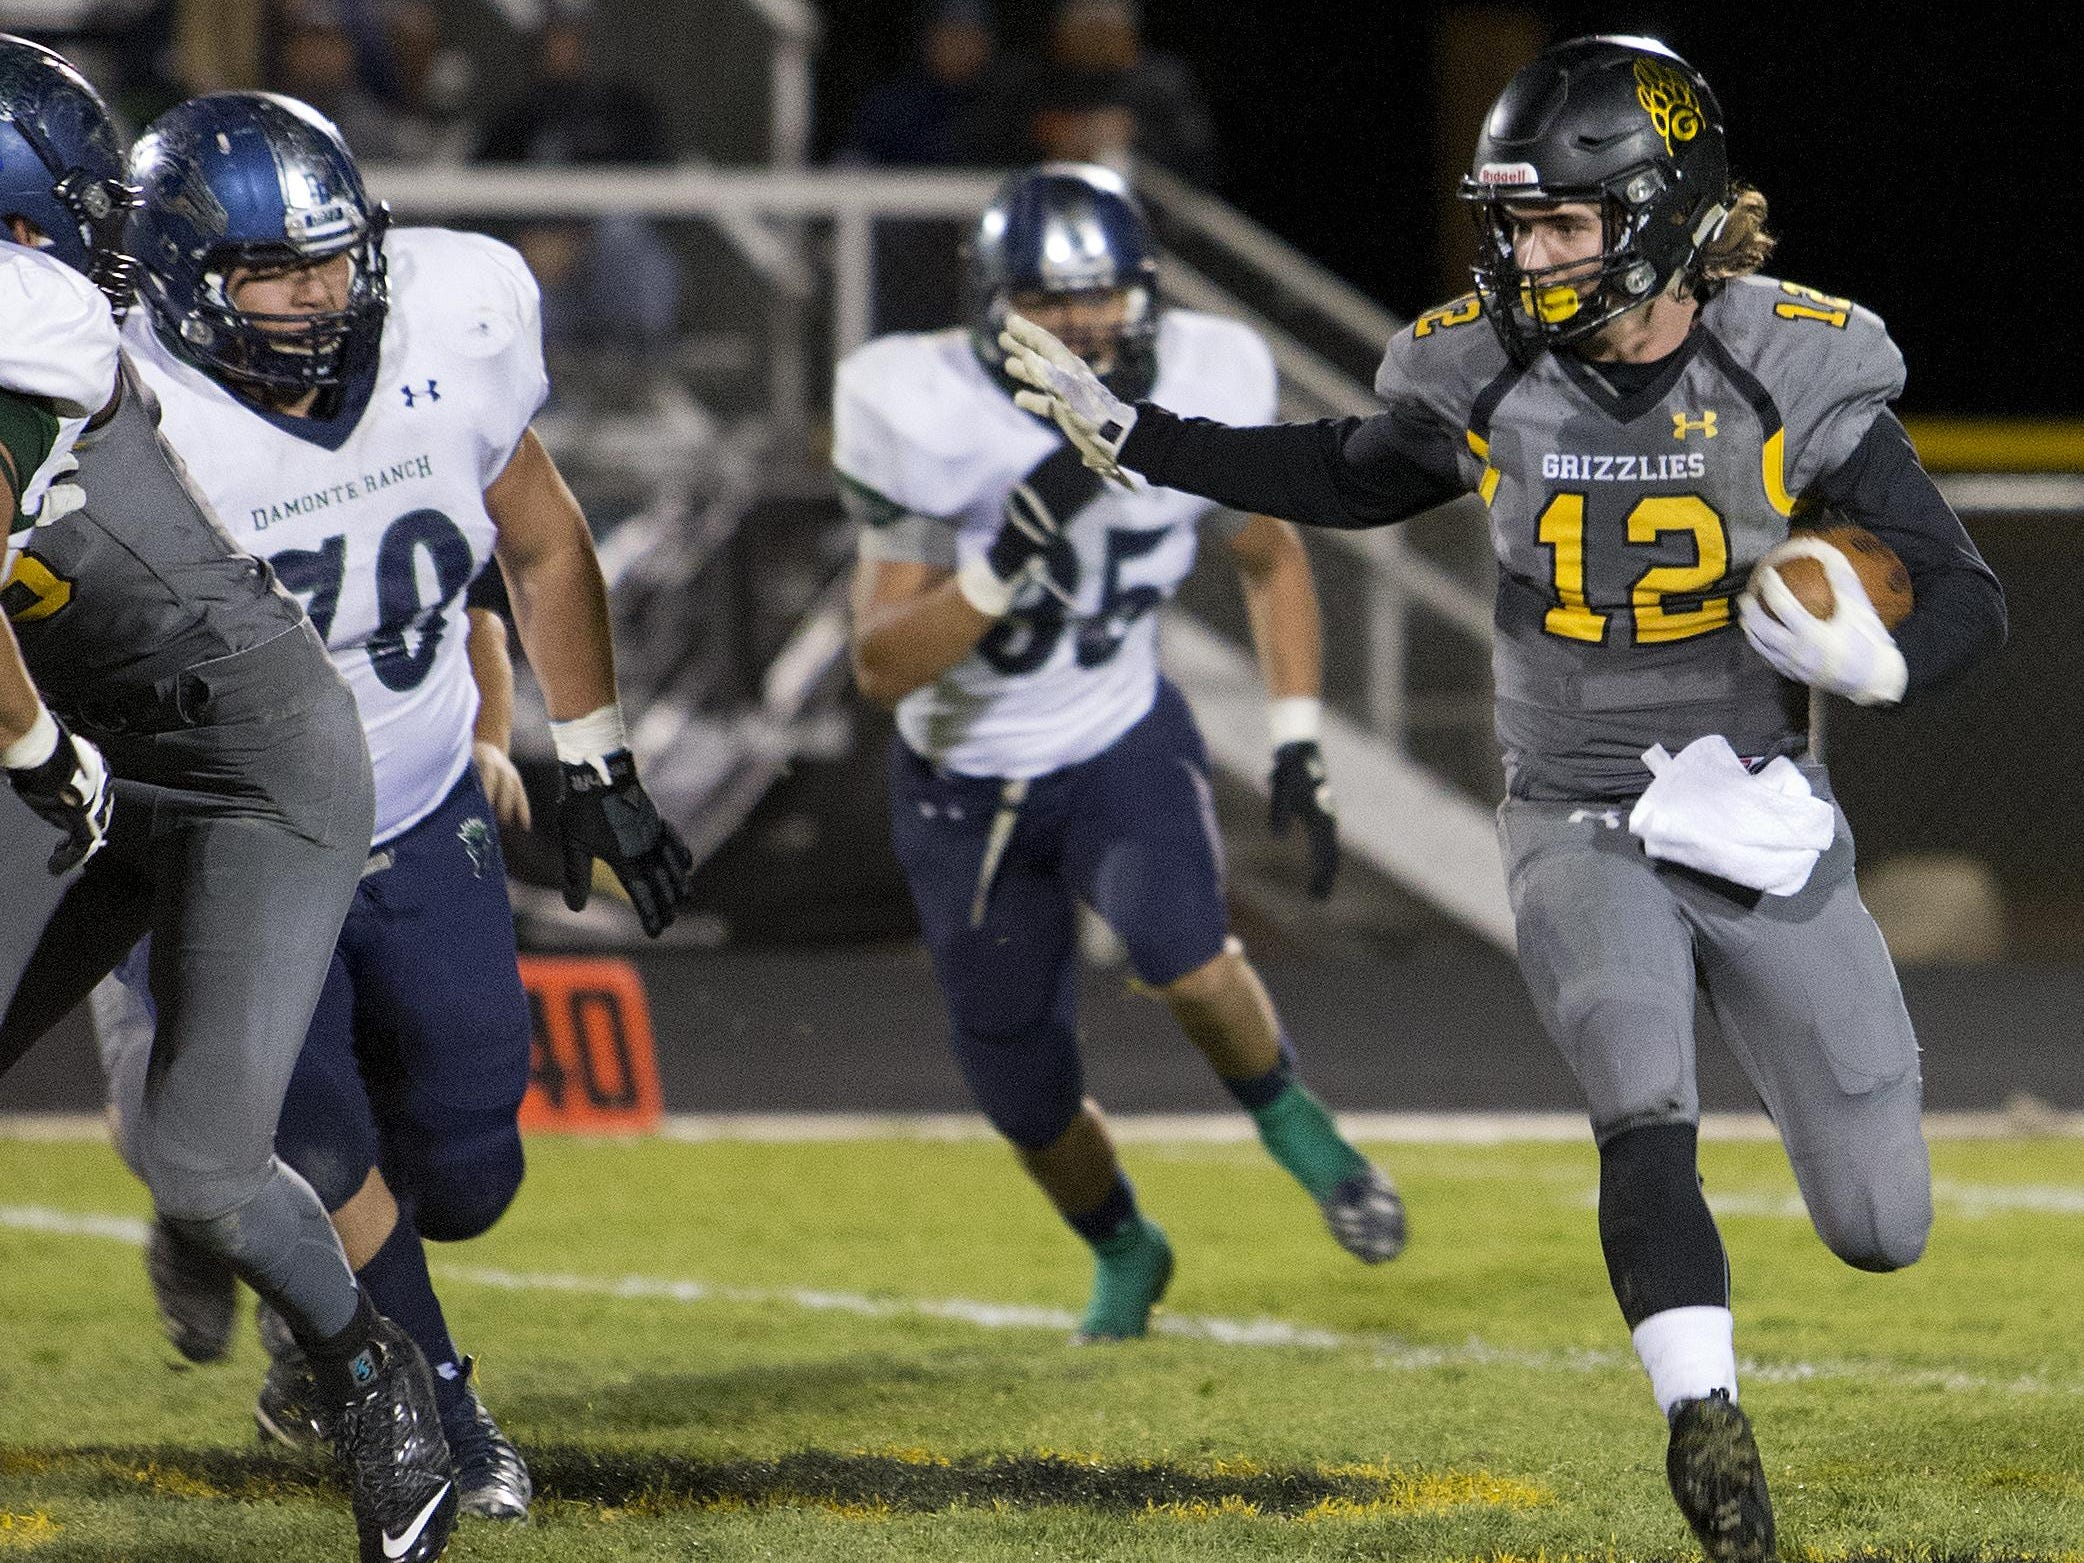 Galena's Quintin Mills runs around the outside of the Damonte Ranch defense during Thursday's game.